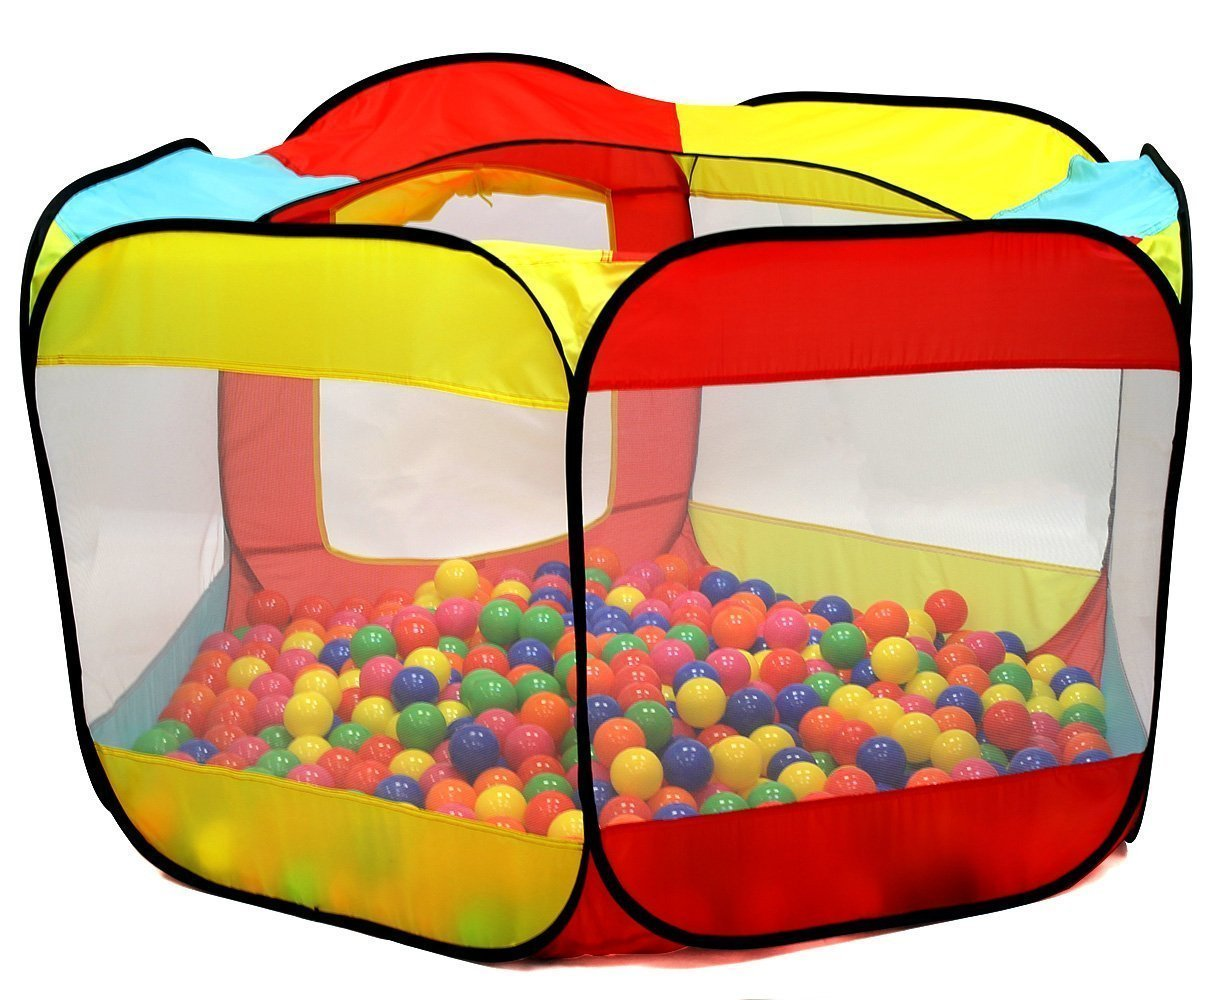 Top 9 Best Ball Pit for Kids Reviews in 2019 3